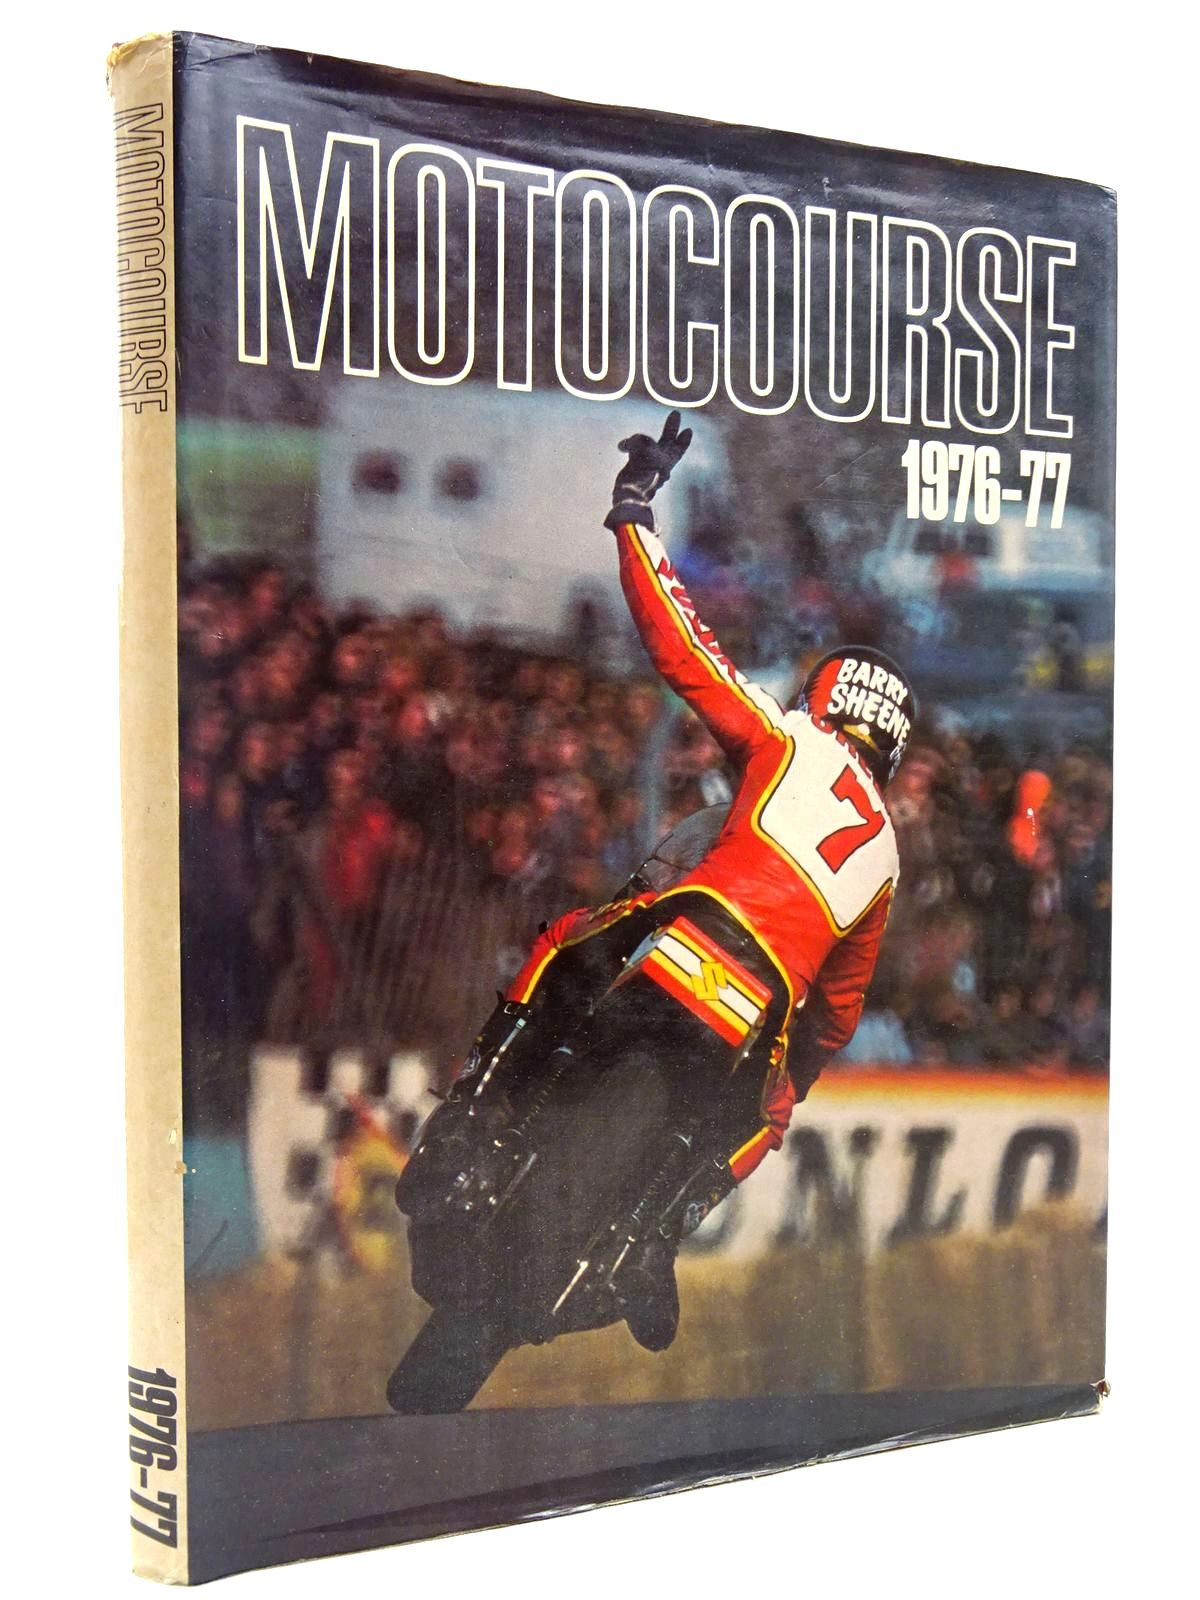 Photo of MOTOCOURSE 1976-77